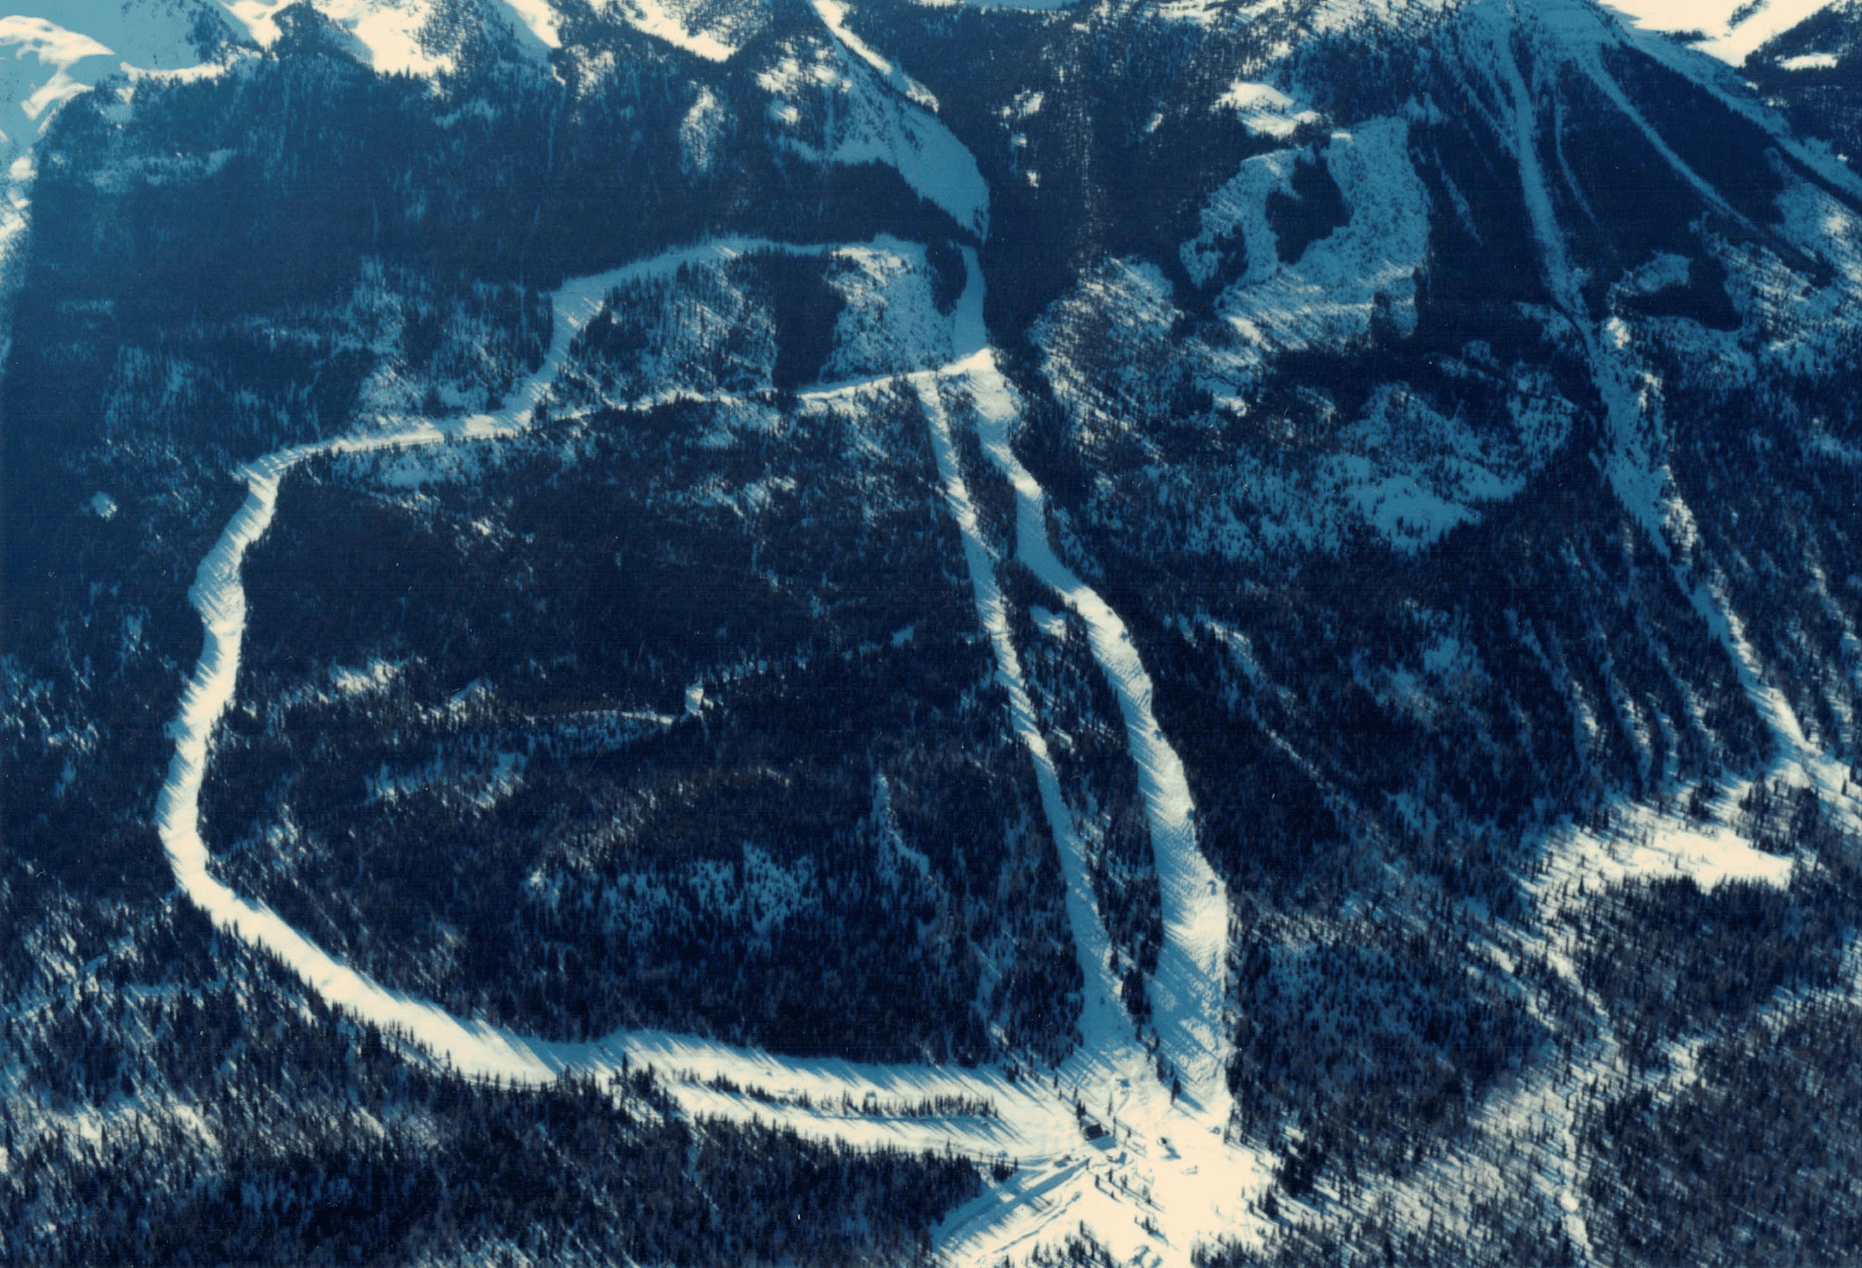 The original Kicking Horse area was called Whitetooth Ski Area and only had three runs.